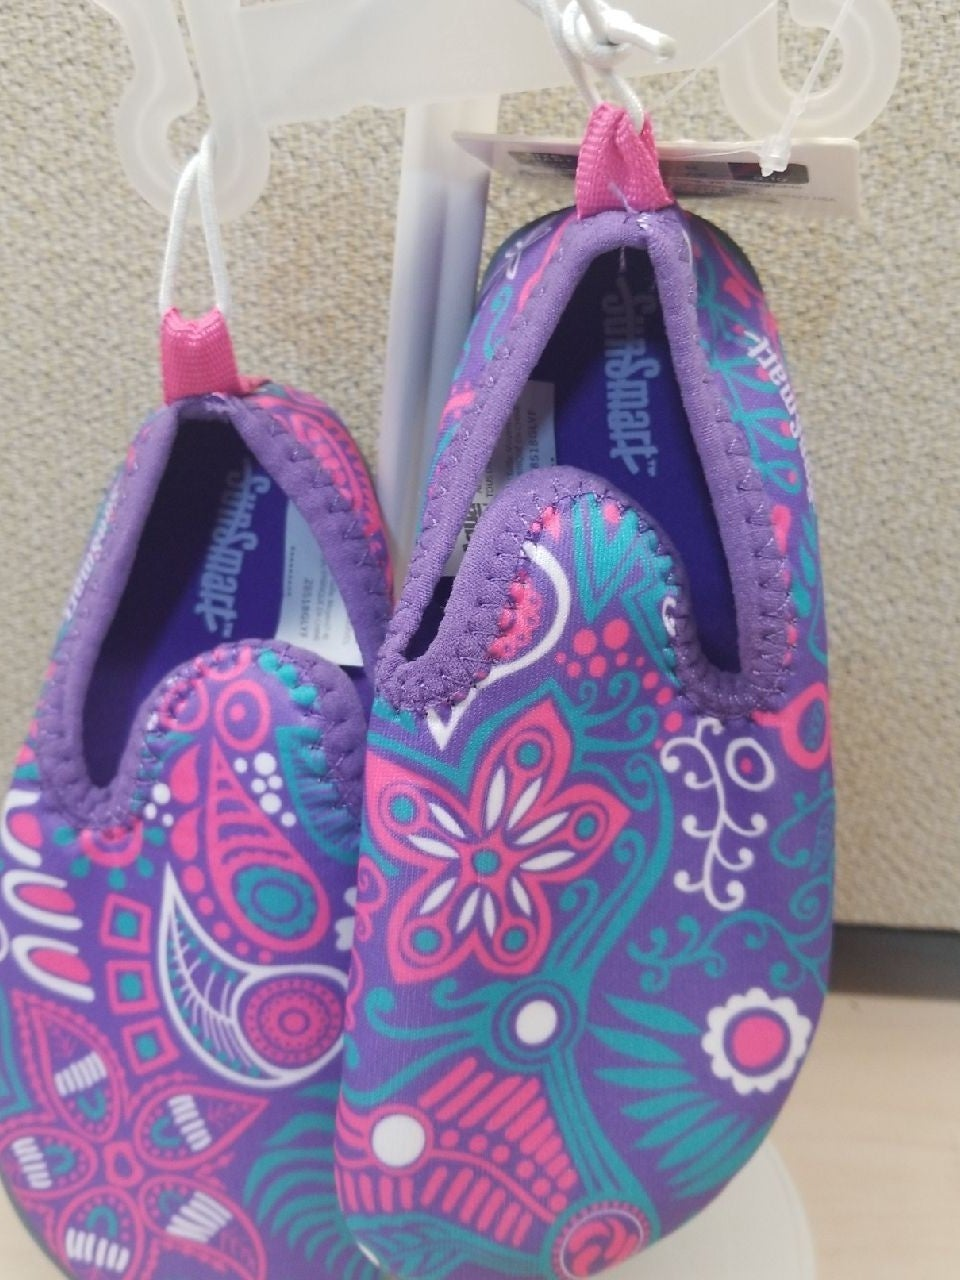 Sun Smart water shoes for little girl